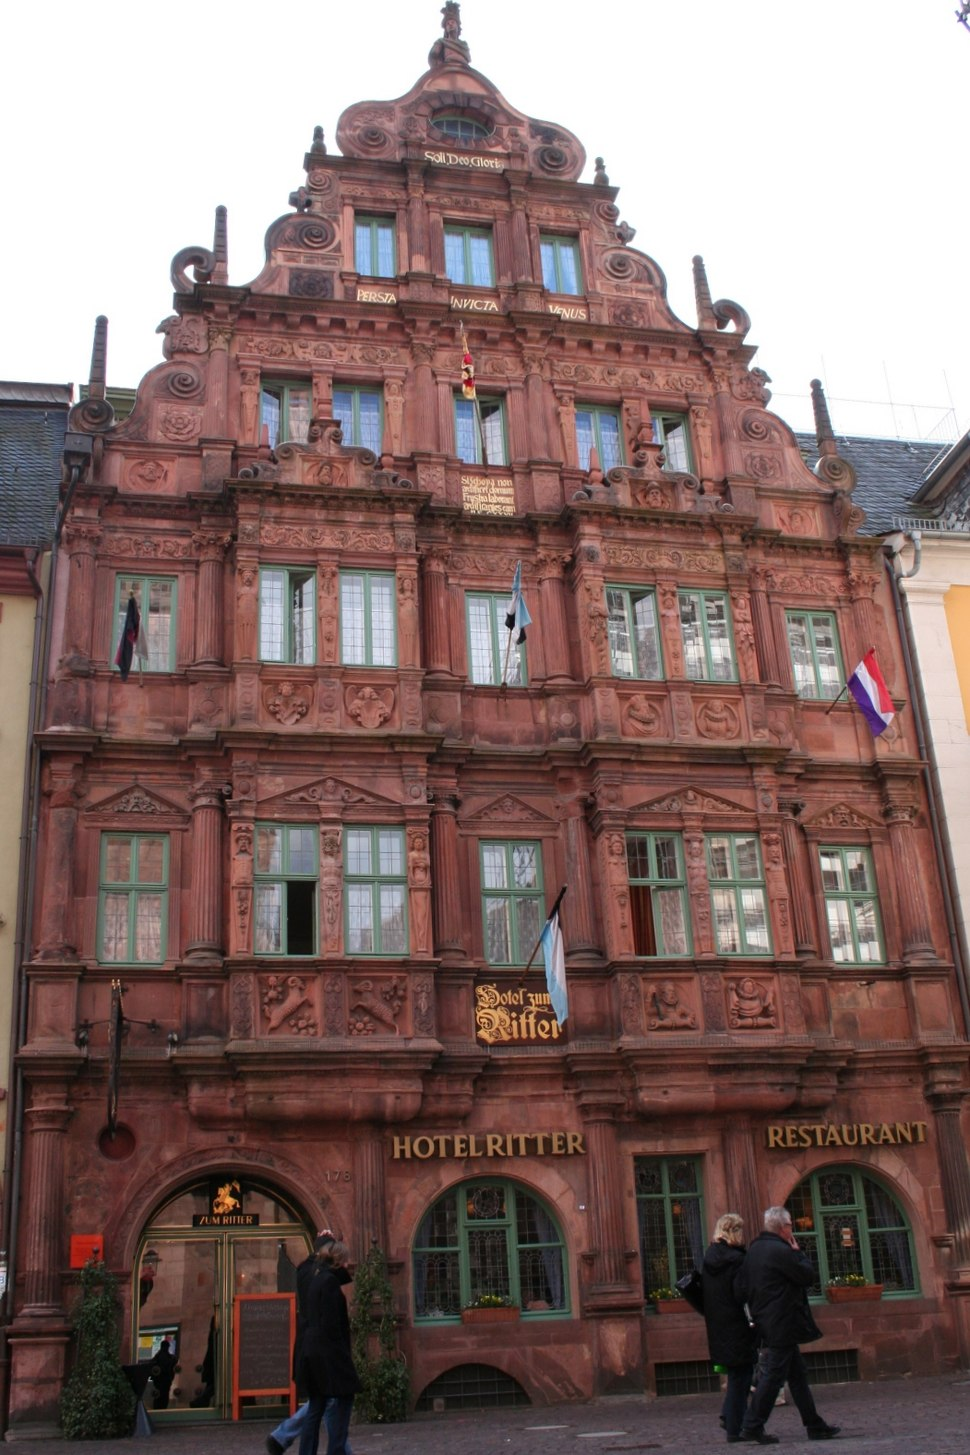 Hotel Ritter, building constructed in 1592